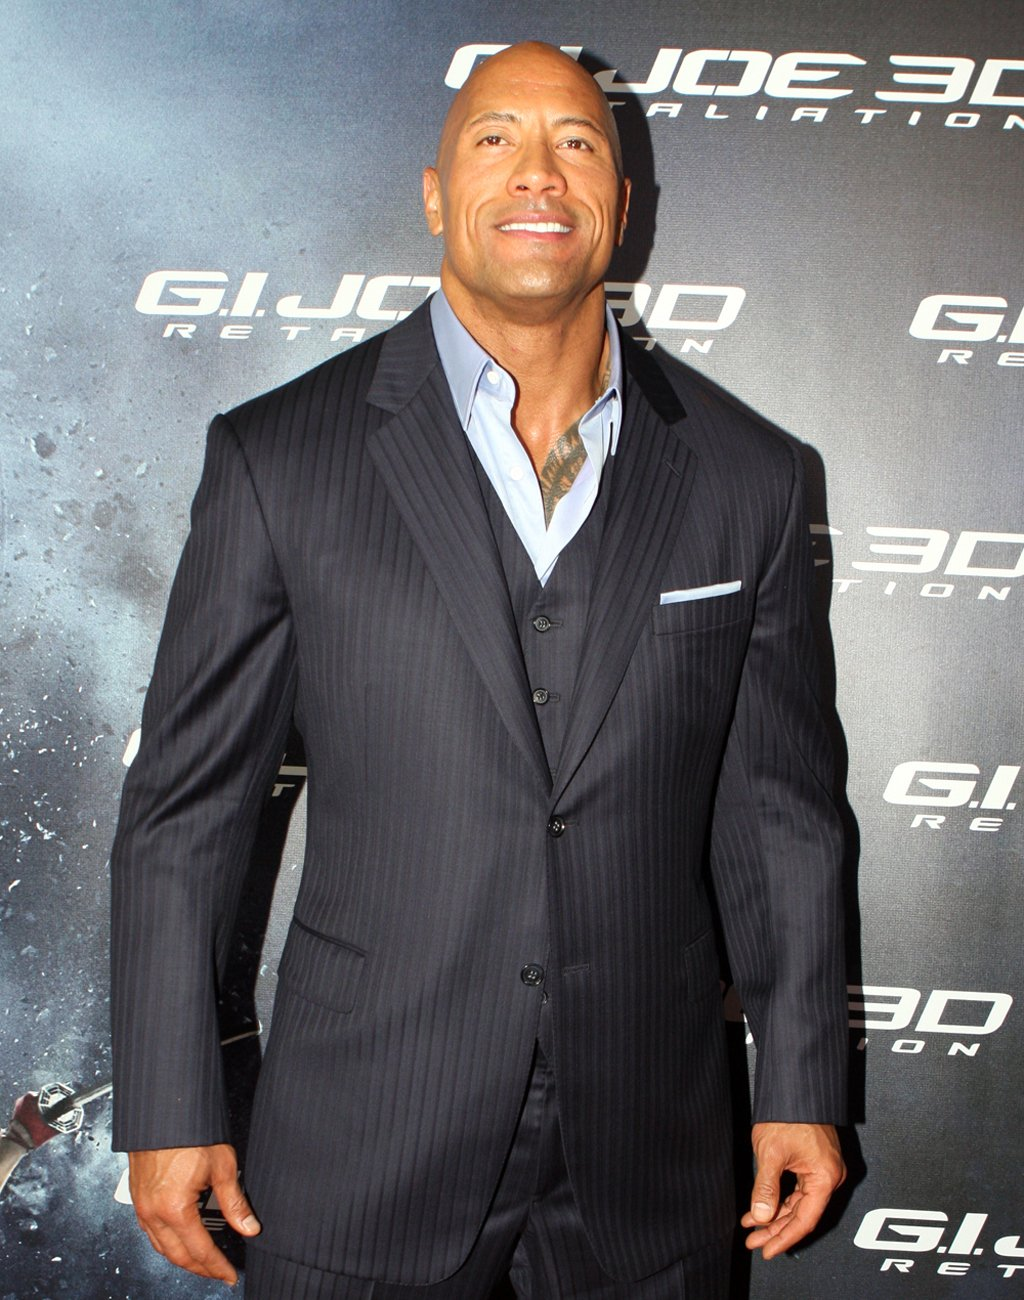 Dwayne Johnson, AKA the Rock, wearing a suit.